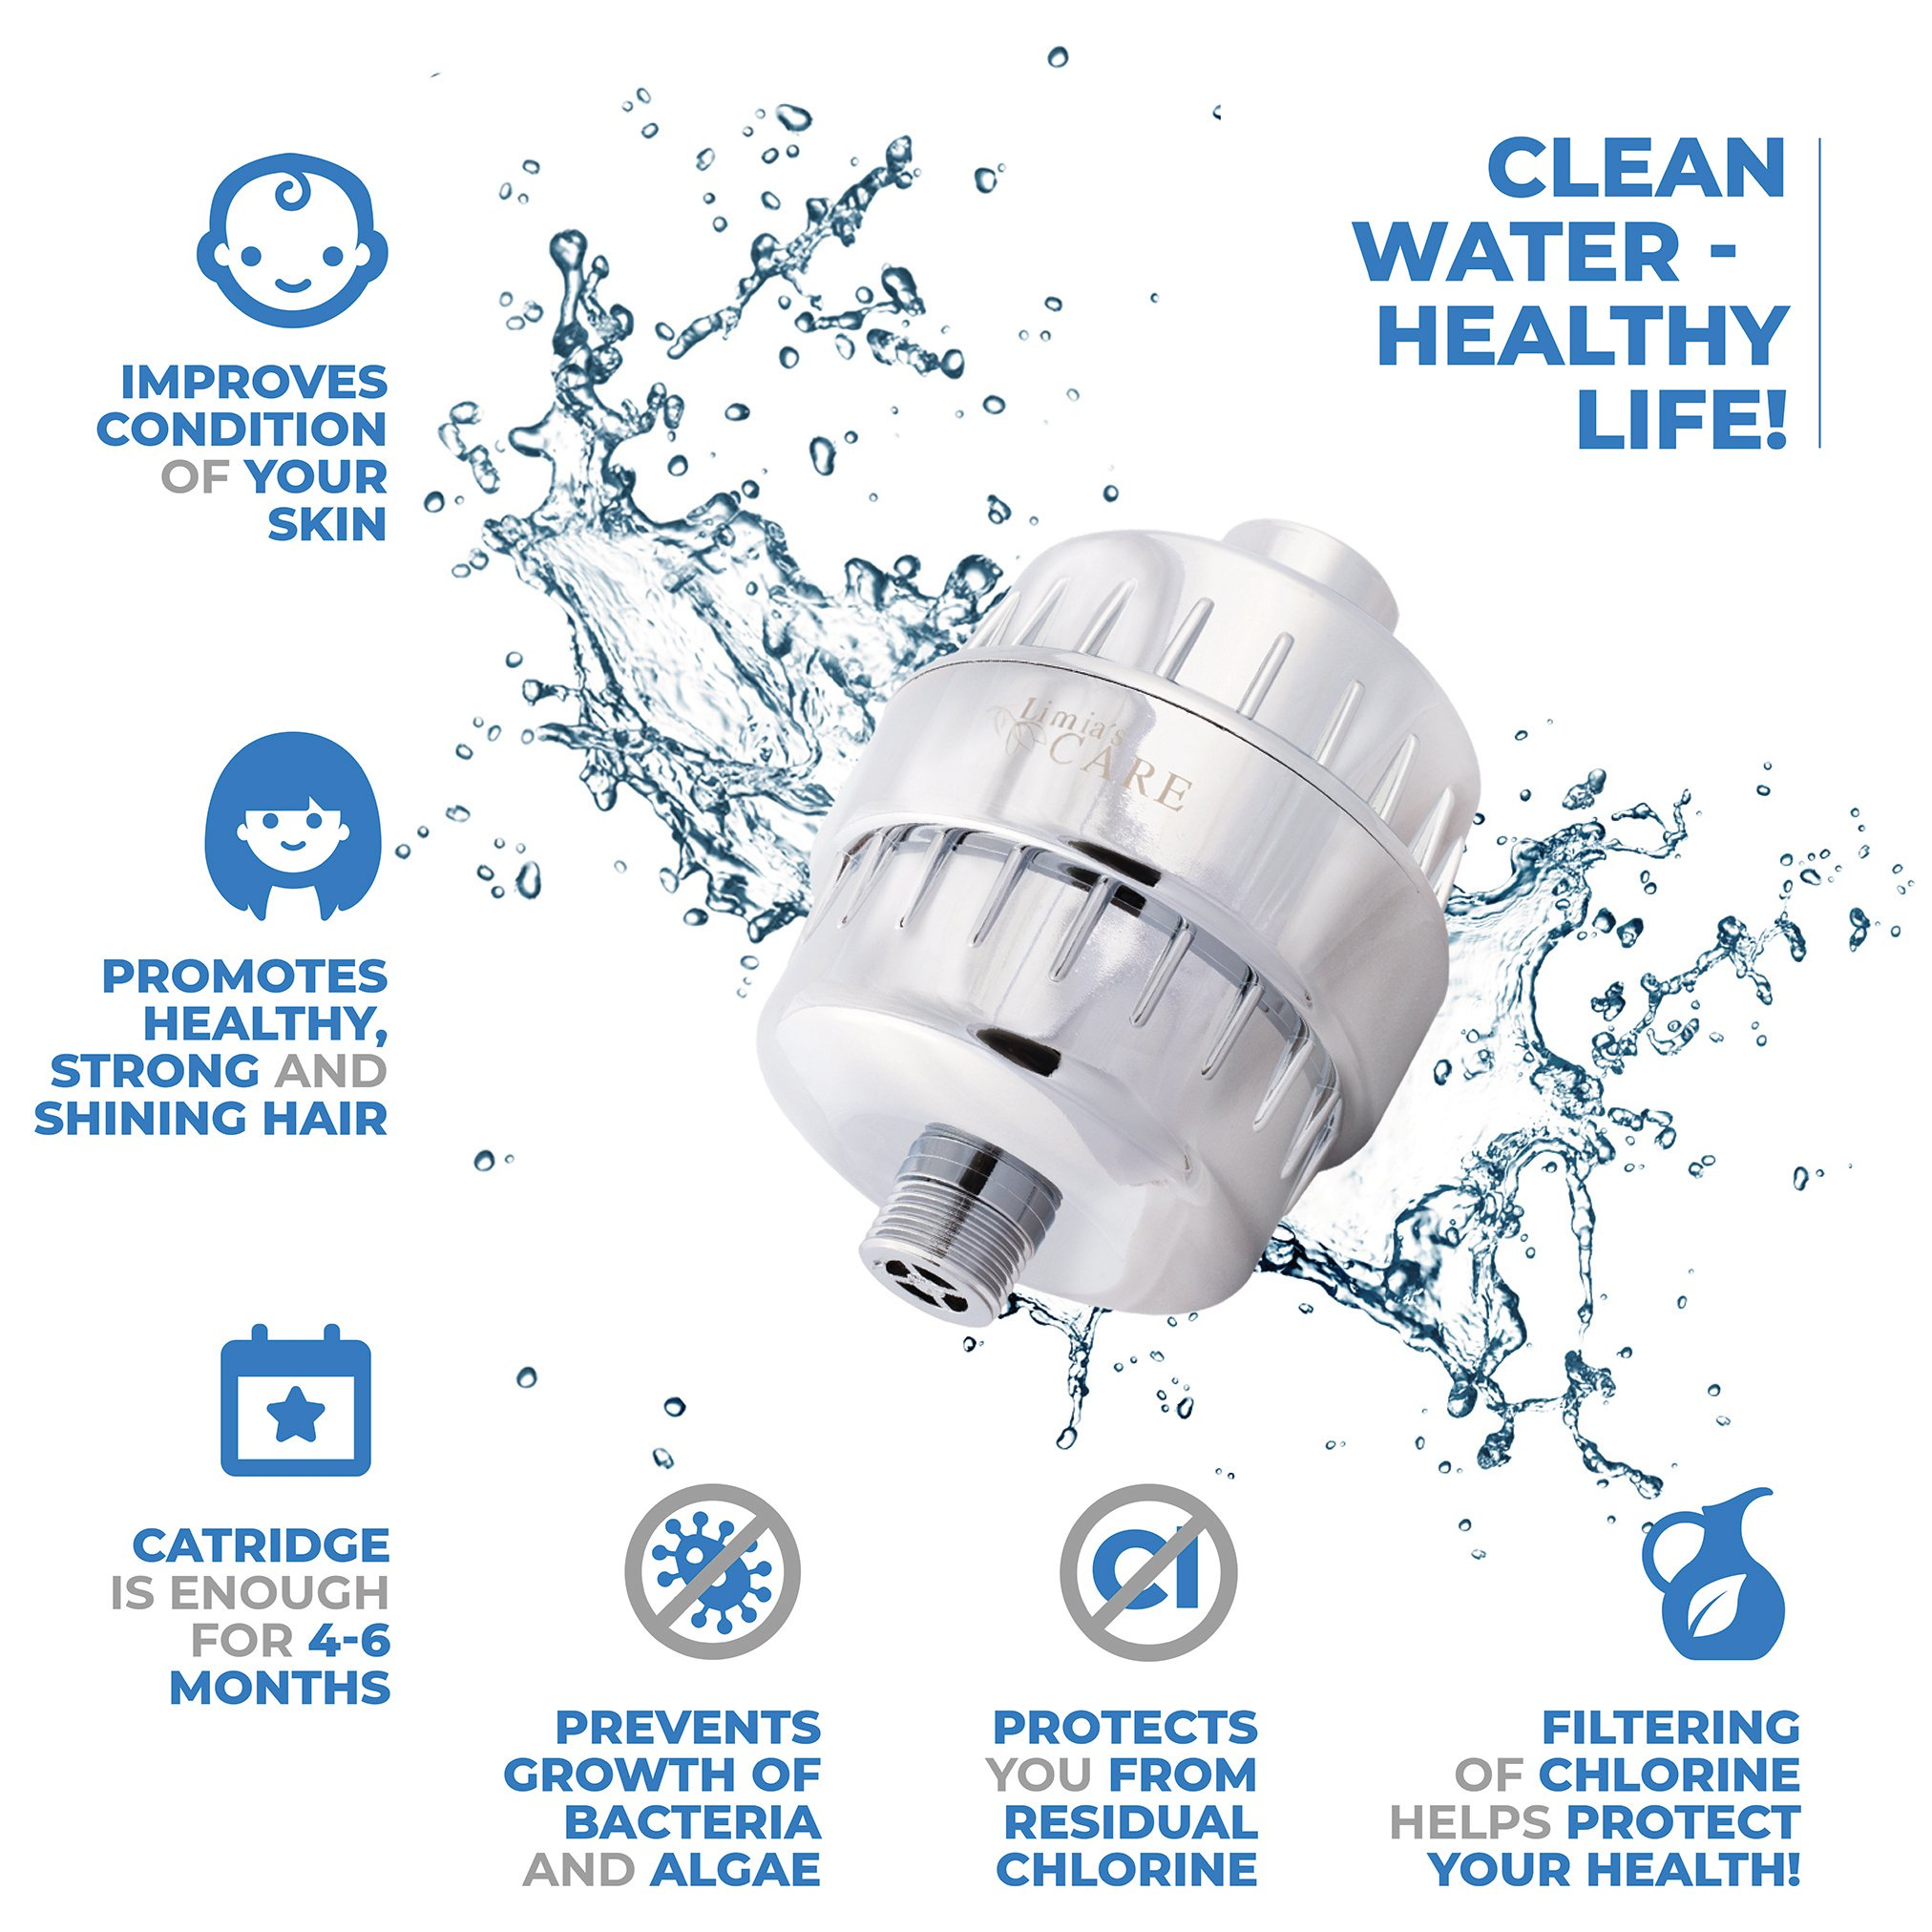 10-Stage Replacement Filter Cartridge for Universal Shower Filter LC-SF3WF - Shower Head Filter - Chlorine Filter - Hard Water Filter - Water Softener - Showerhead Filter